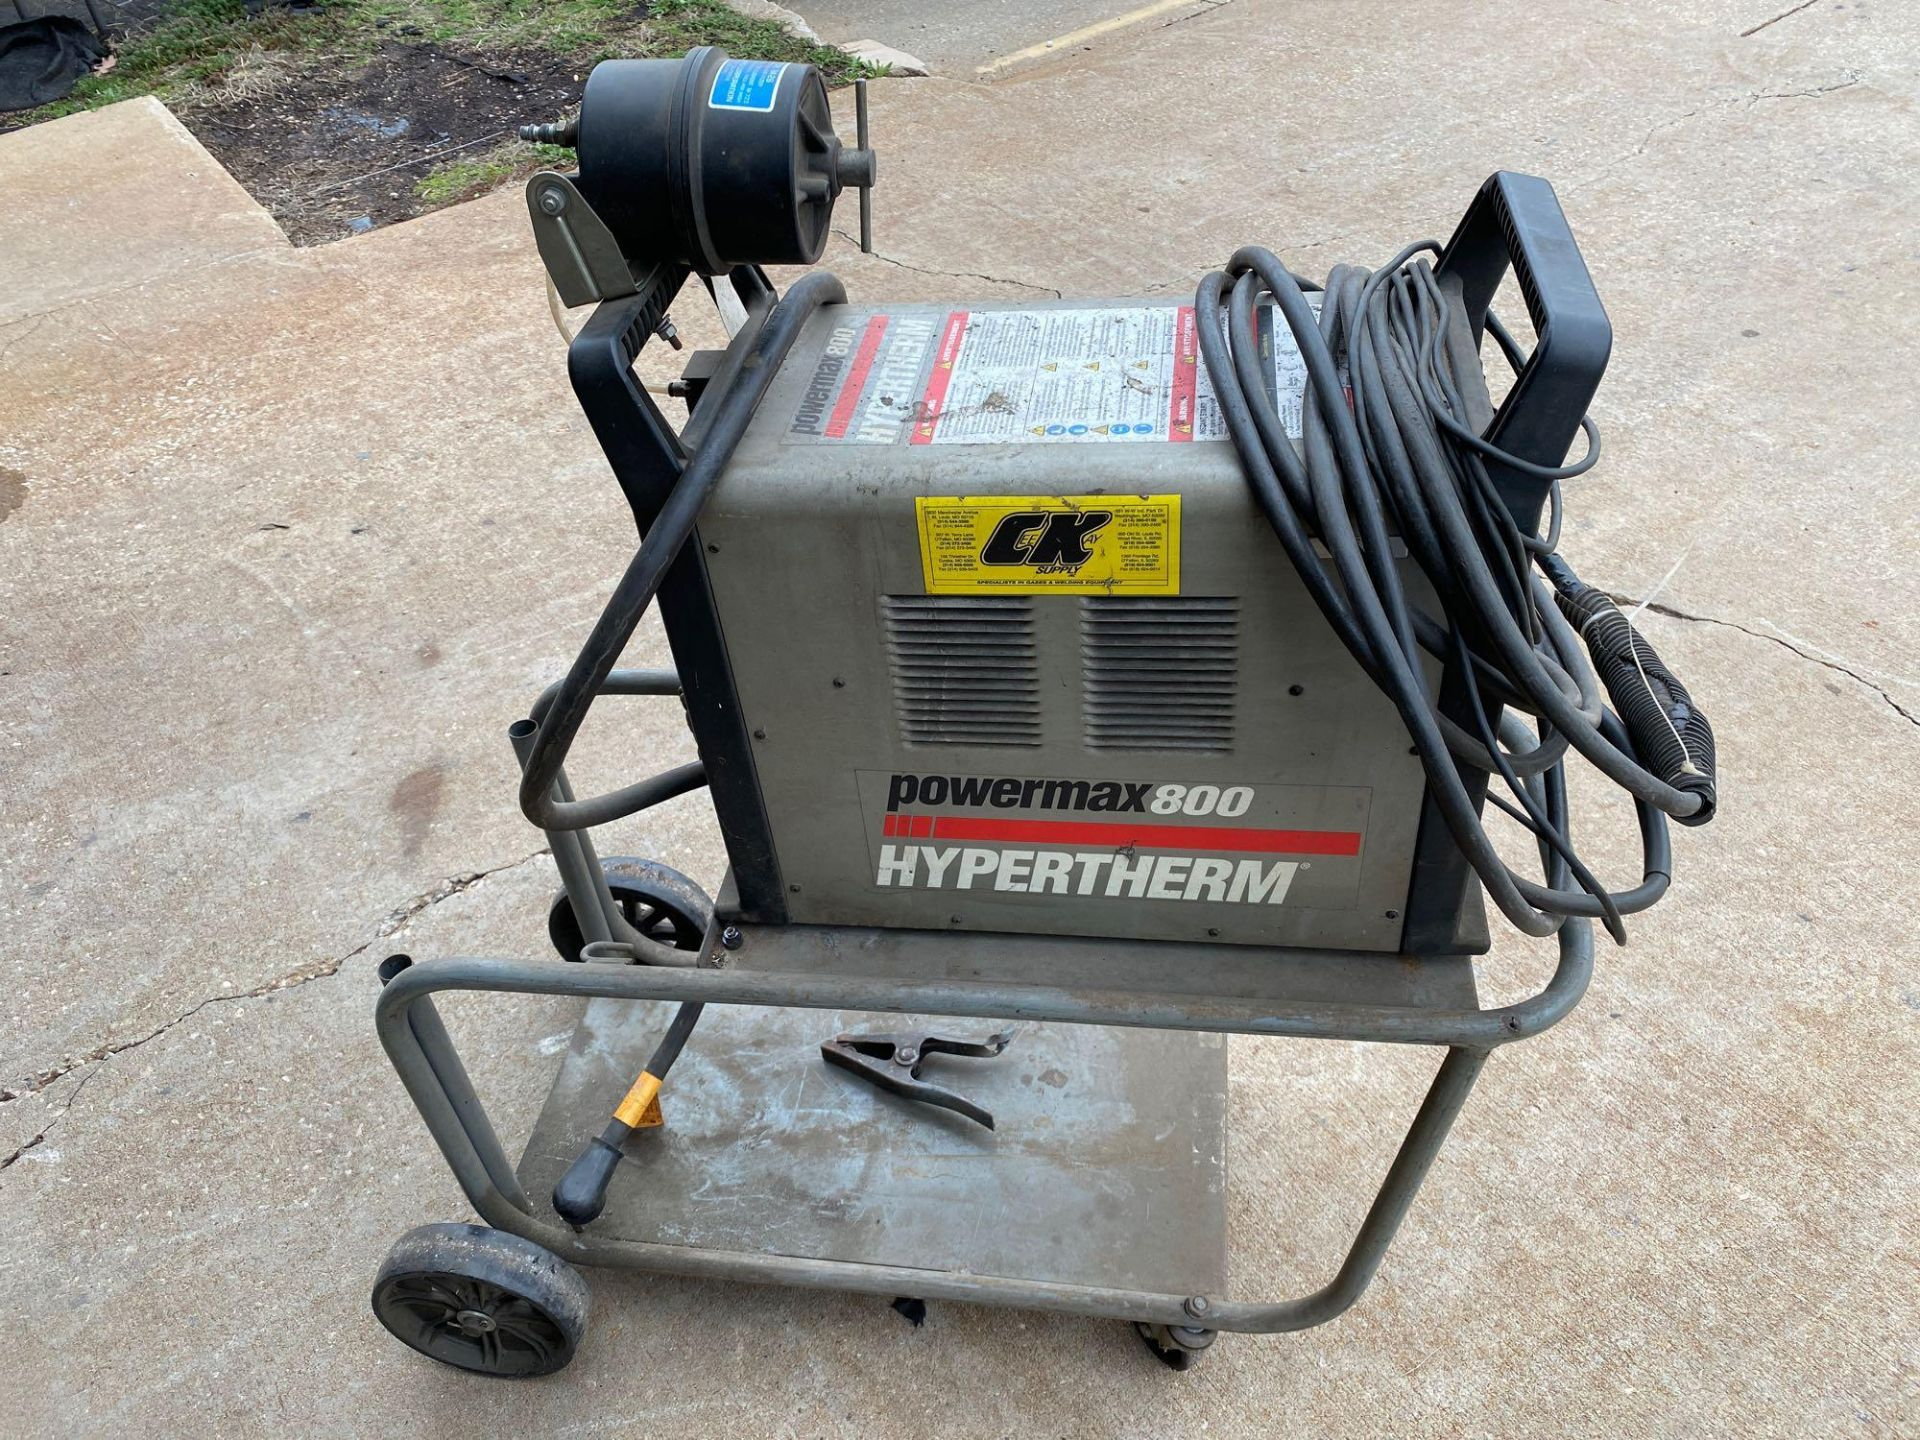 Power Max 800 Hypertherm Plasma Cutter - Image 4 of 8